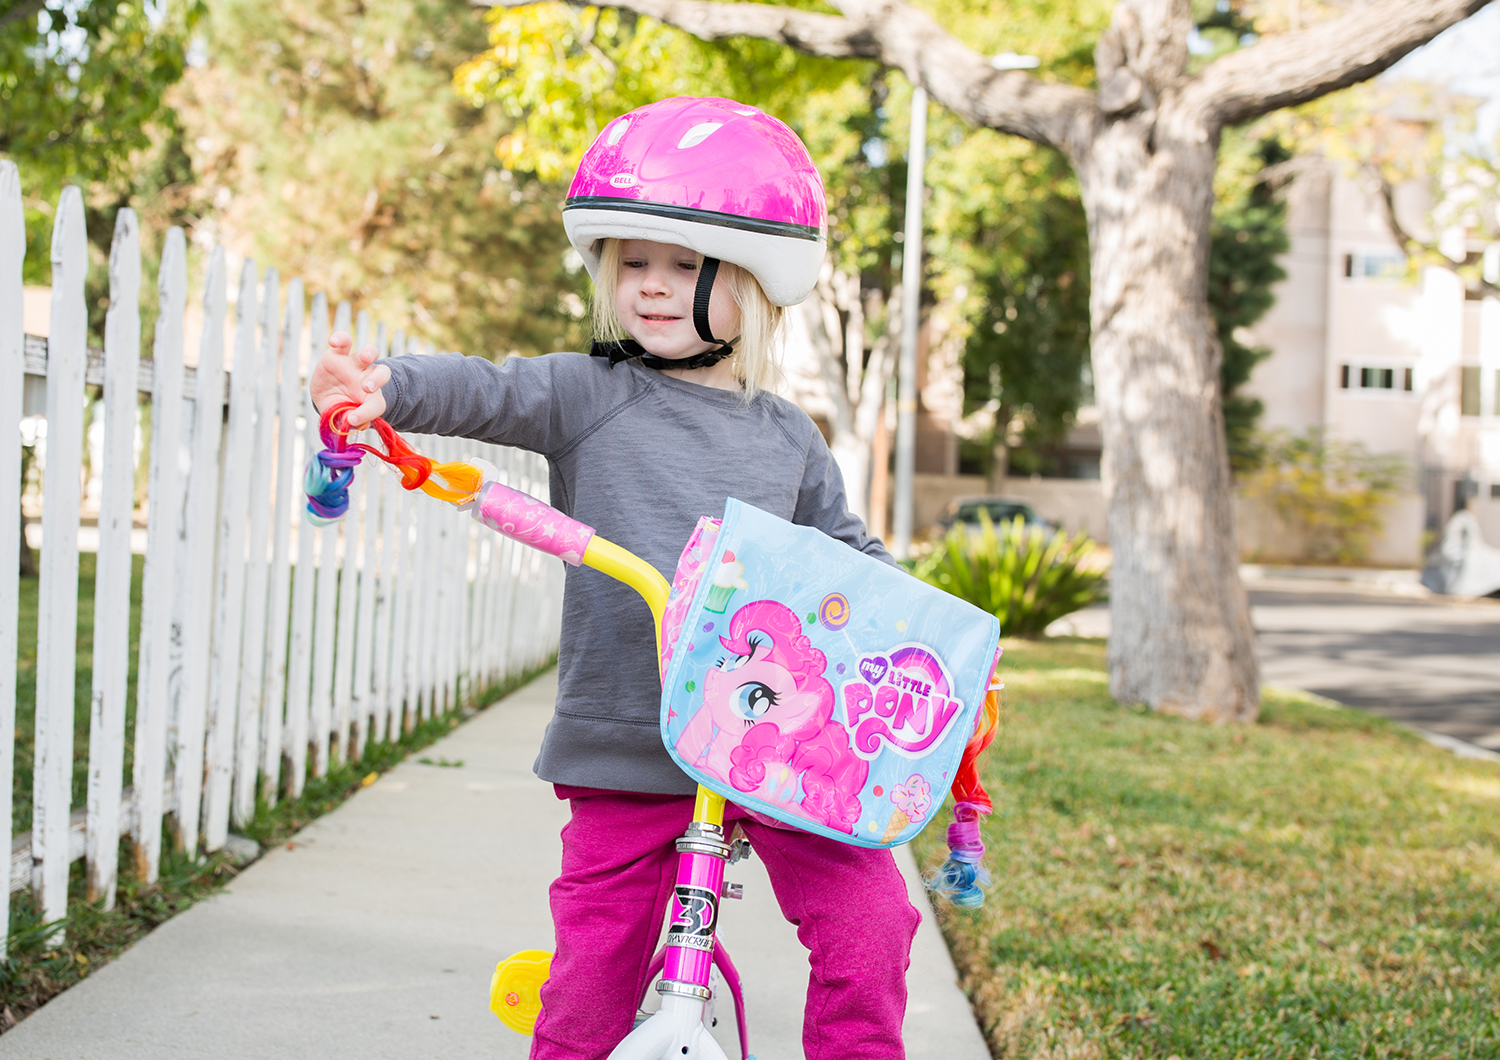 Want to know when to take off the training wheels? These 7 simple steps will help when teaching your child how to ride a bike!